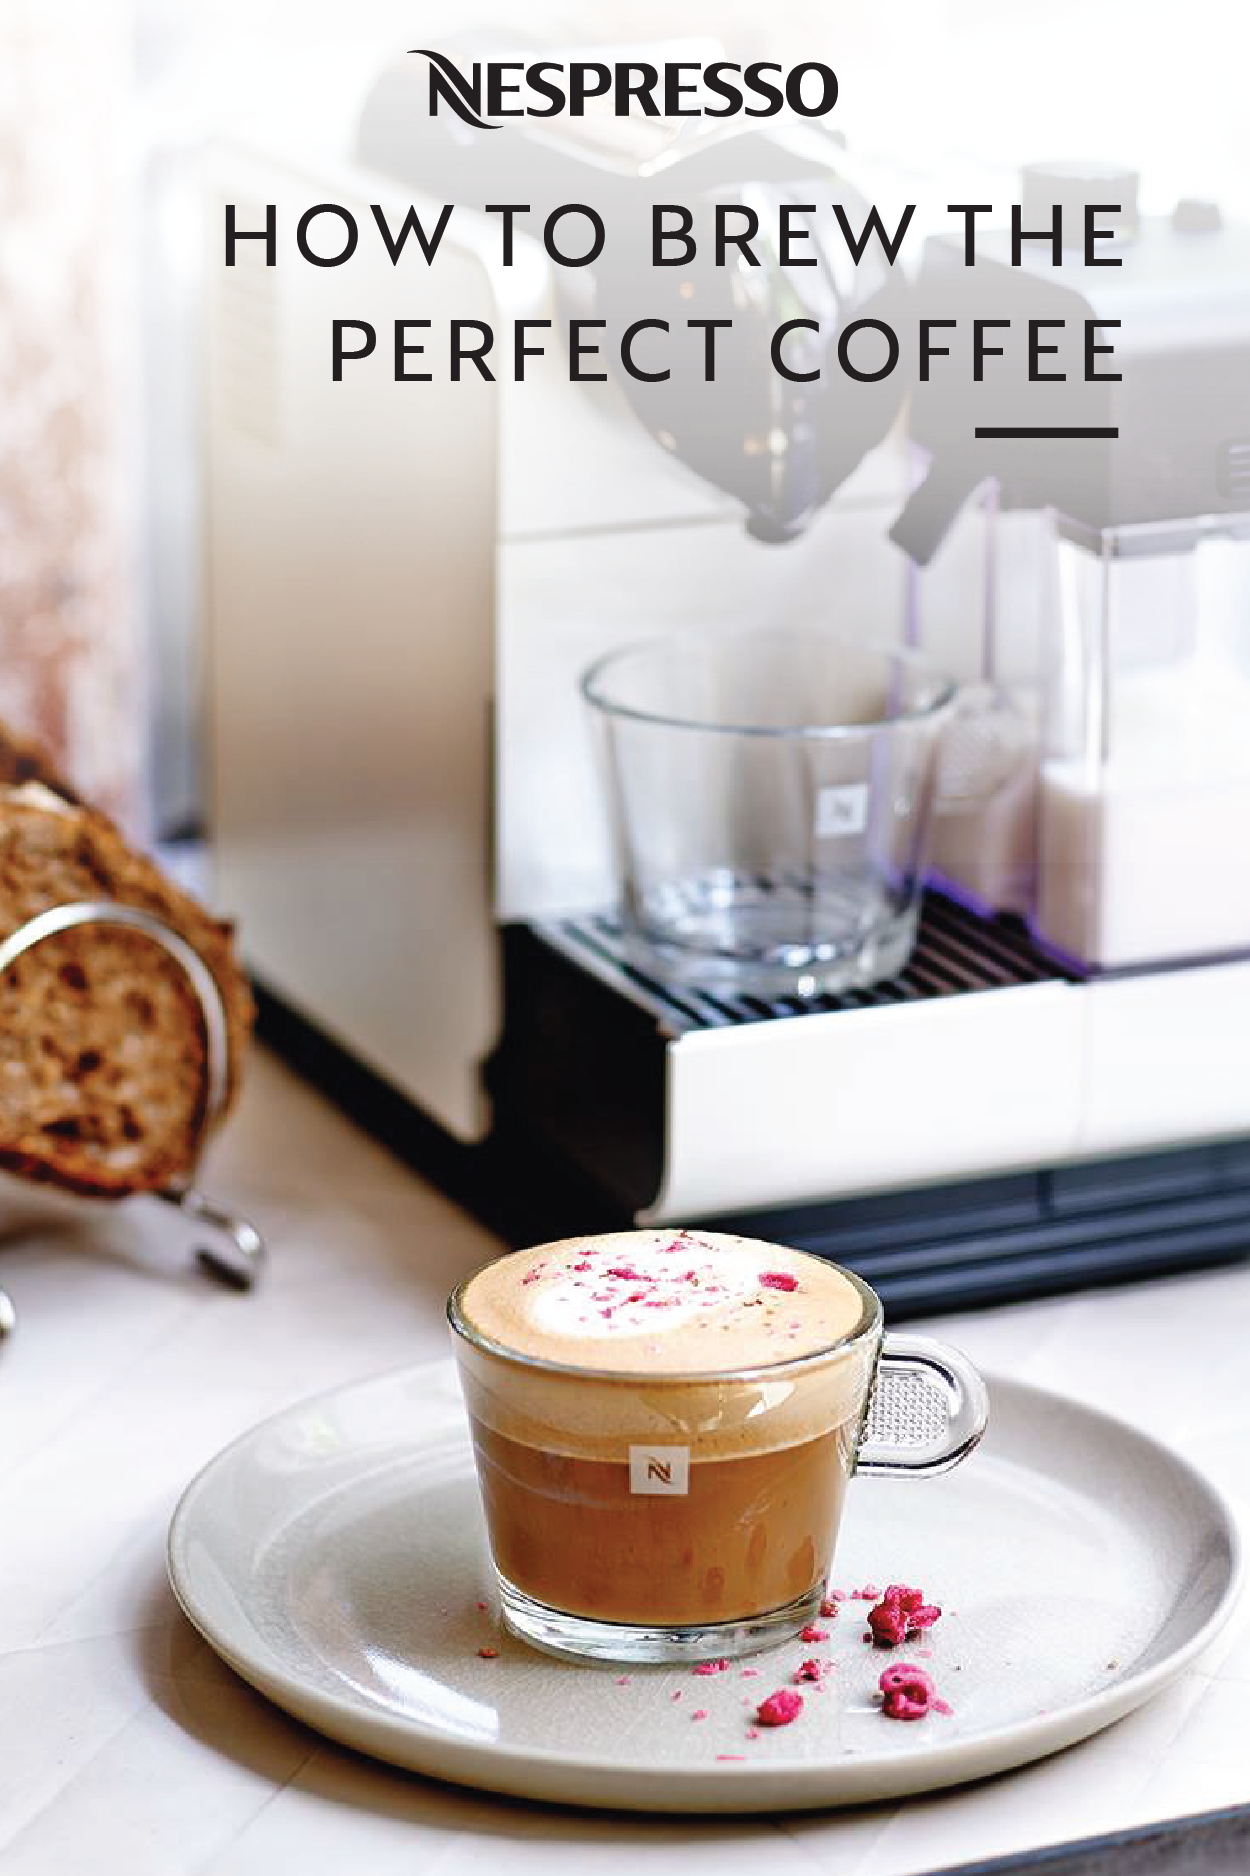 Take Your Daily Nespresso Moment To The Next Level With These Morning Coffee Must Haves These Elegantly Craf Nespresso Recipes Espresso Recipes Coffee Recipes